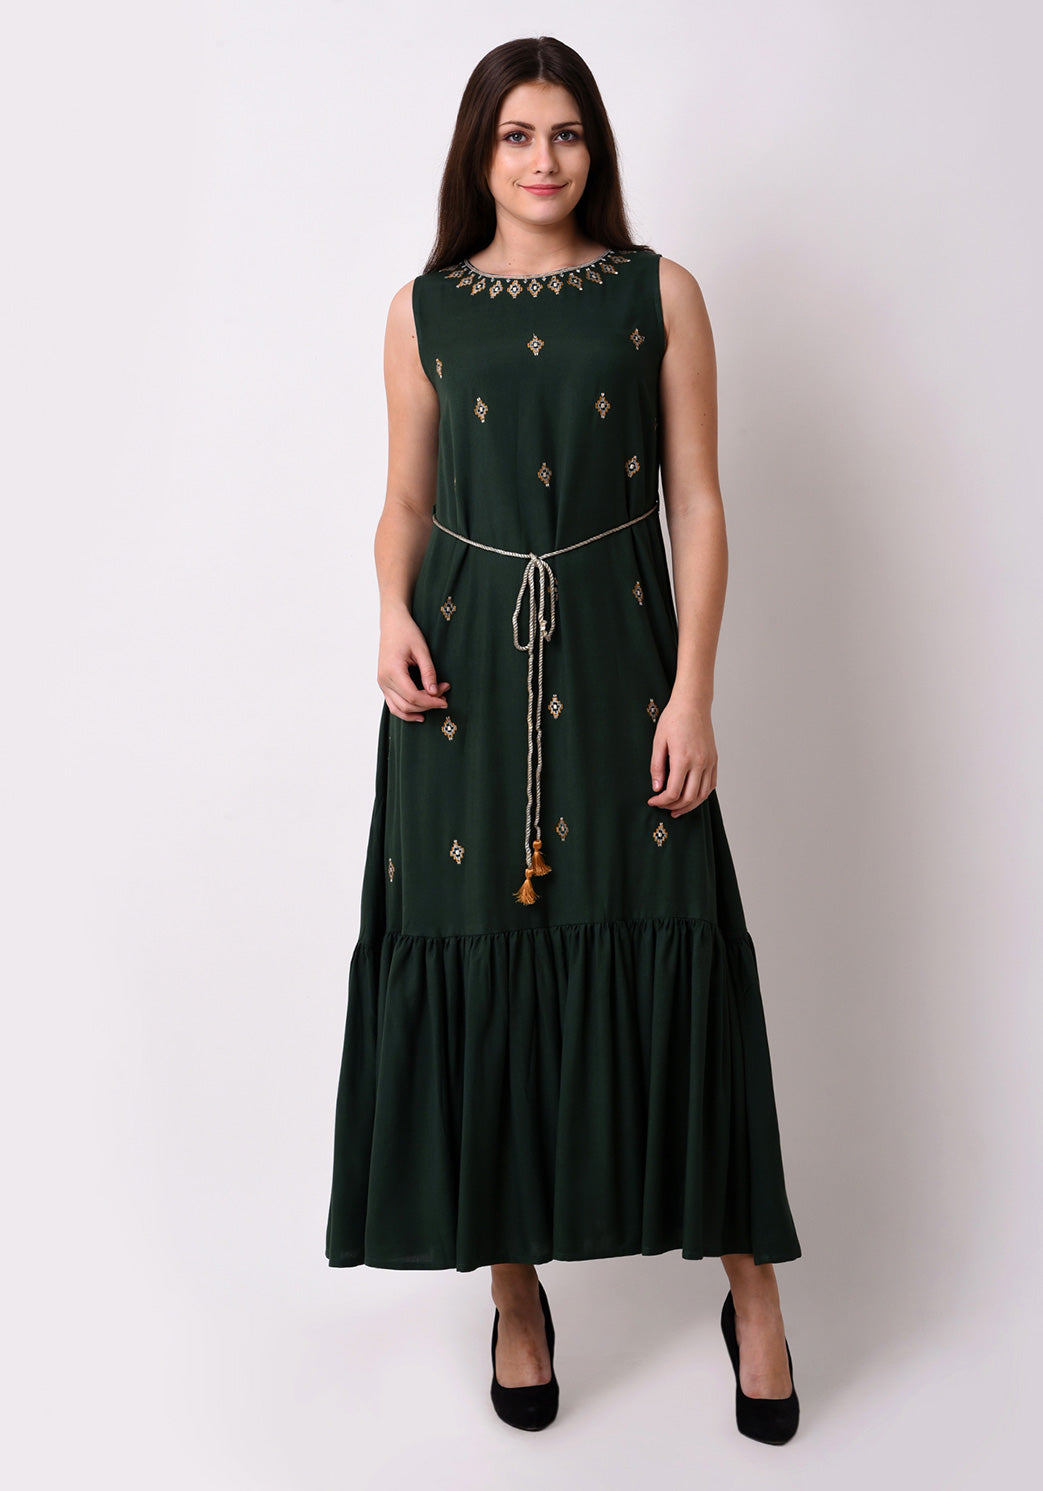 Embroidered Fairytale Maxi Dress - Bright Green